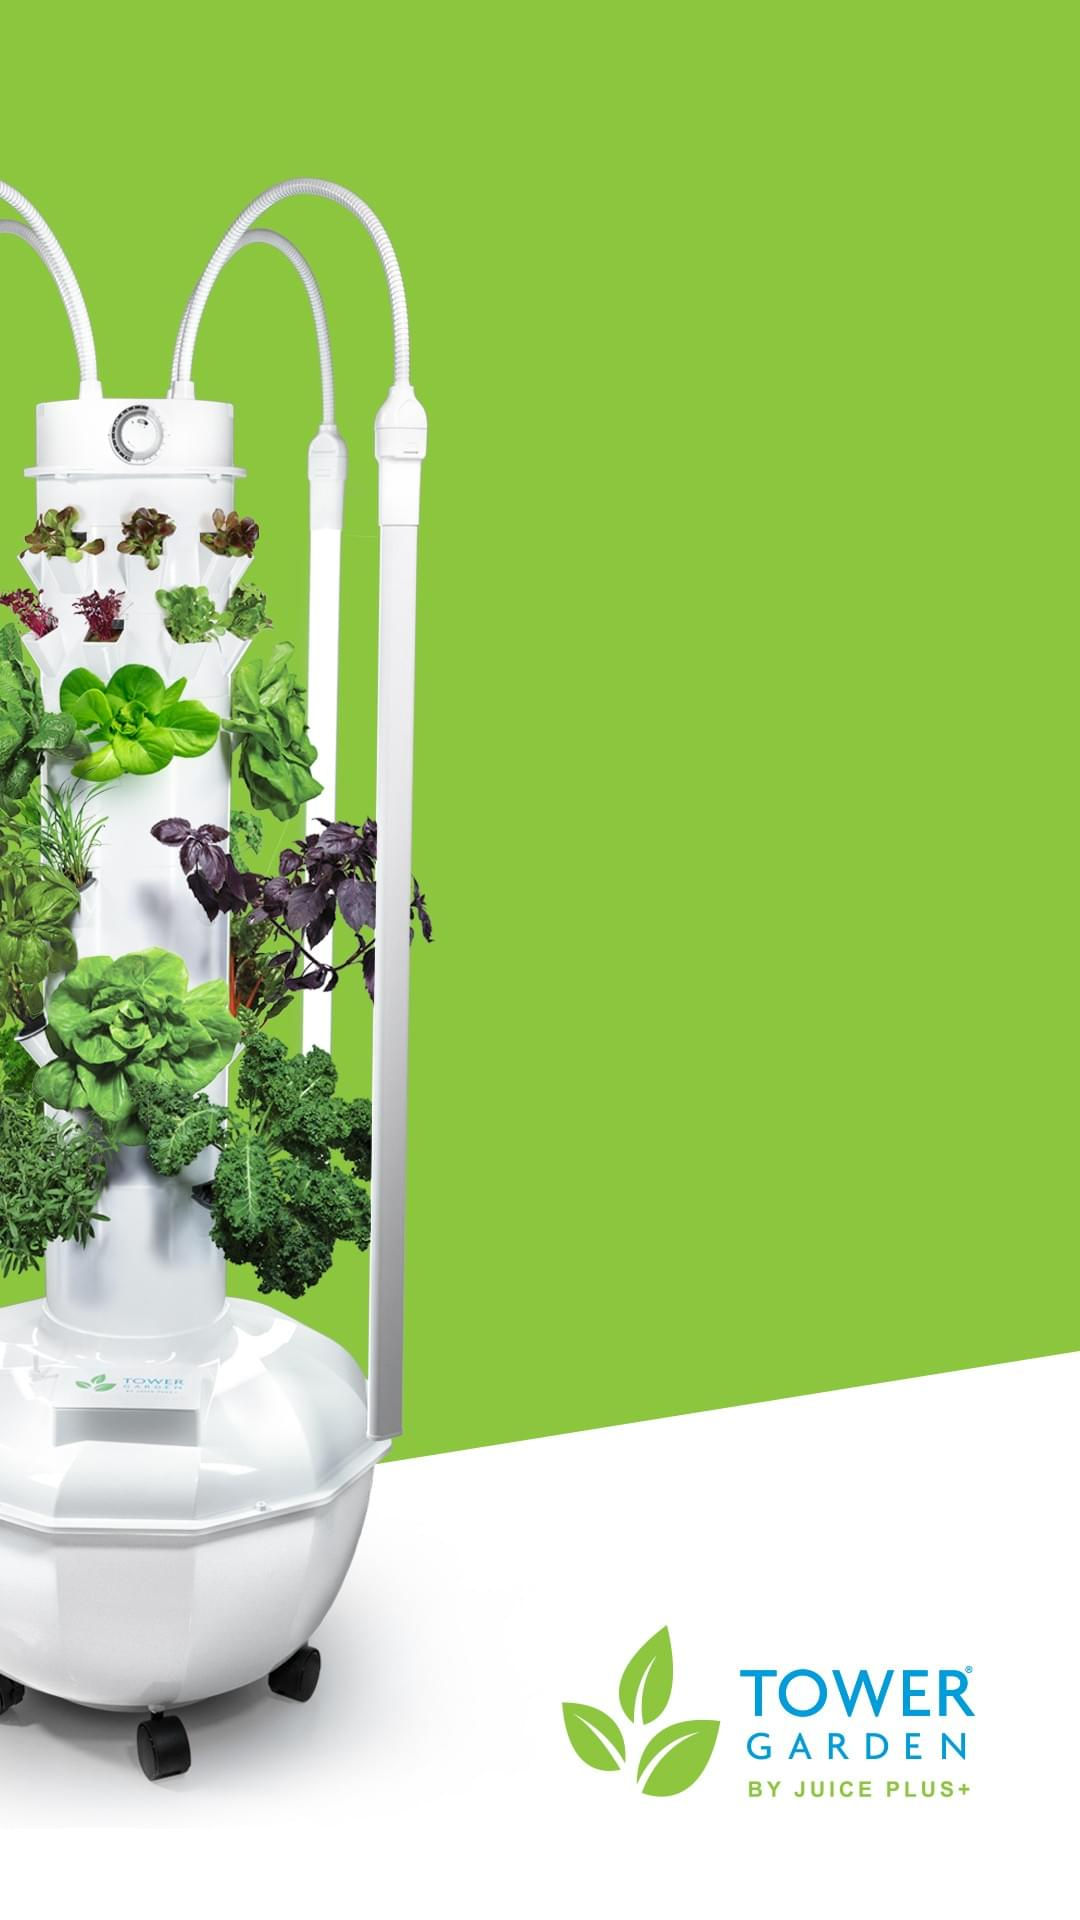 Tower Garden Juice Plus Insights